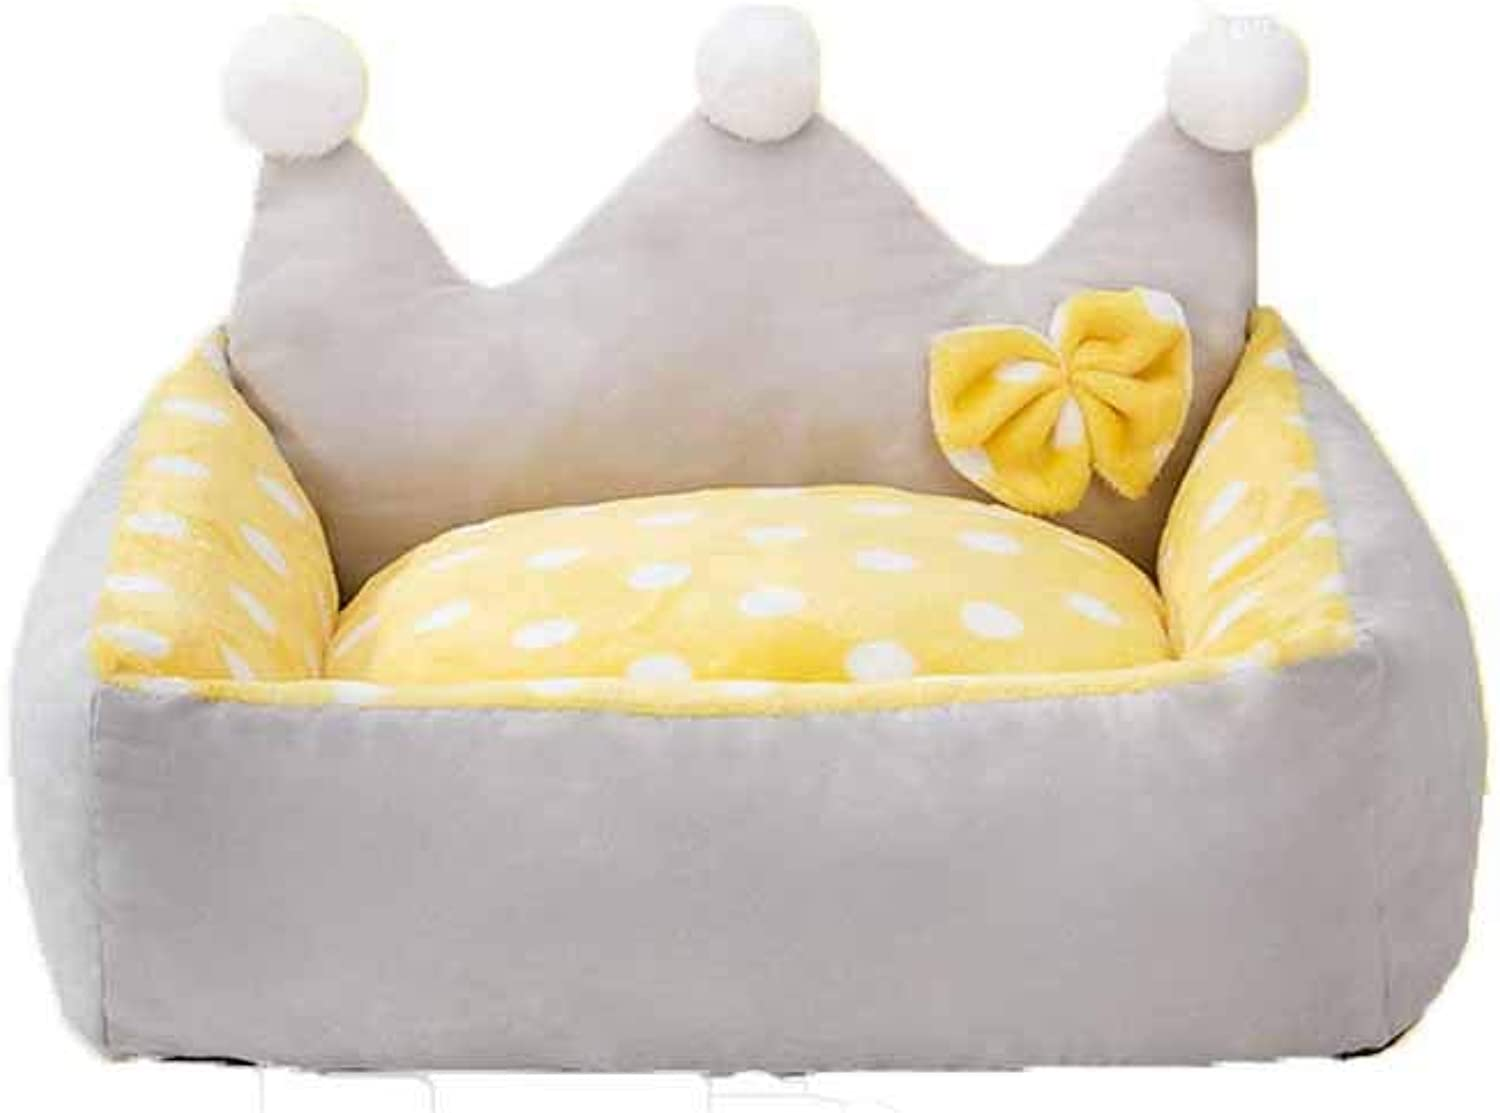 Kennel, Washable, Winter, Princess, Cat Litter, Seasons, Teddy, Small Medium Dog, Dog Bed, Pet Supplies, Keep Warm (color   Yellow, Size   M)